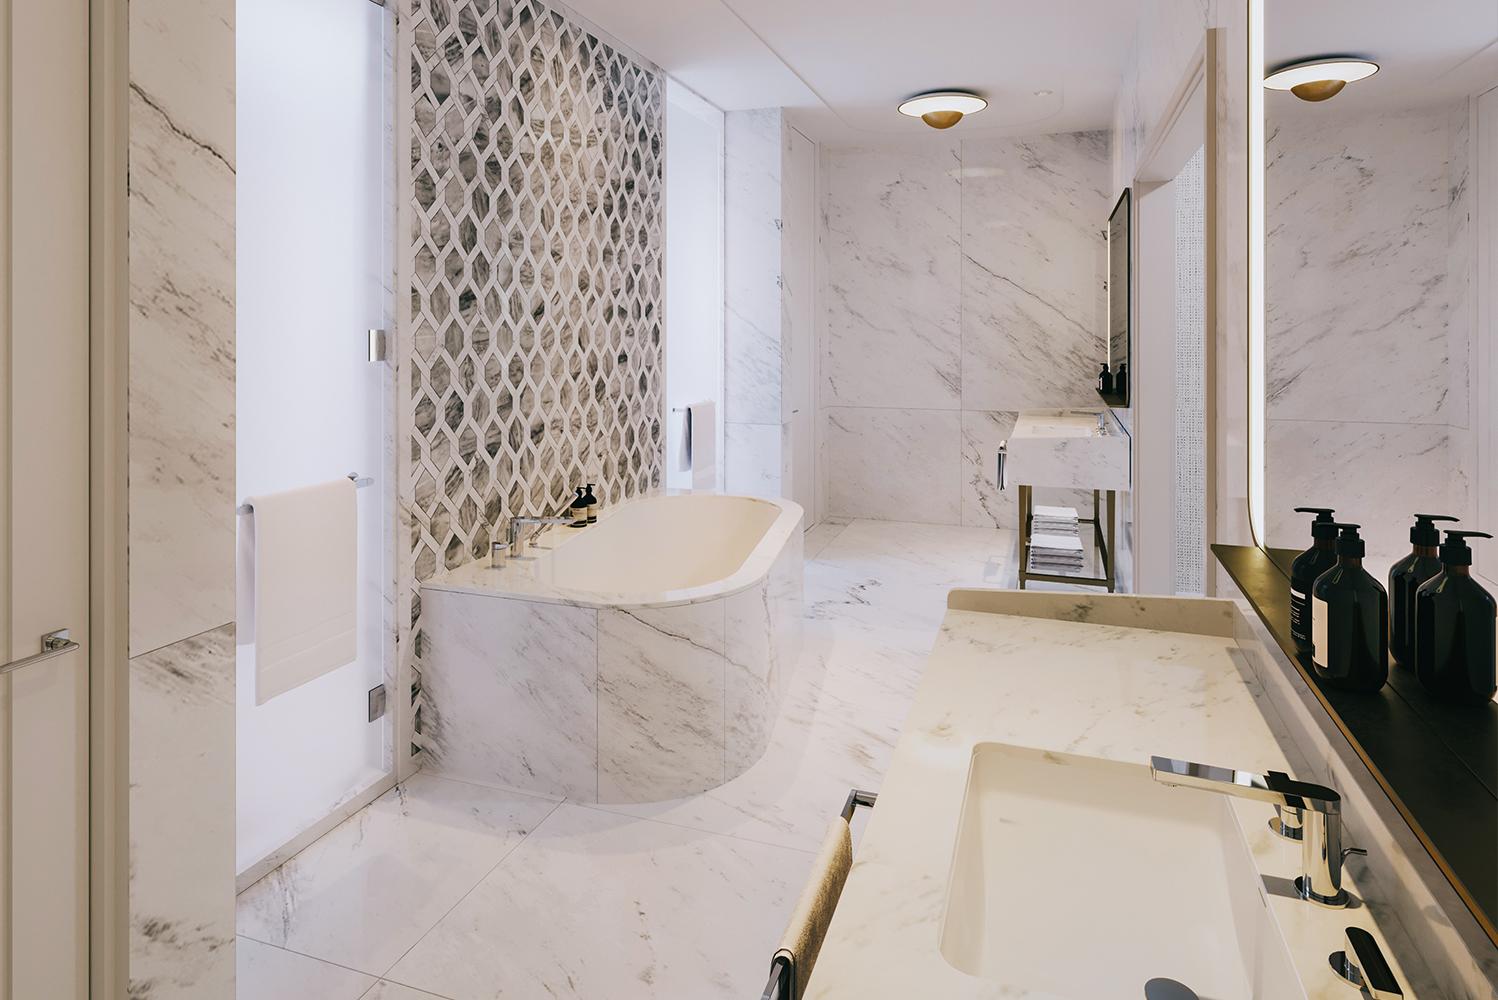 The bathrooms will have a contemporary design, including Alabama white marble walls and floors.